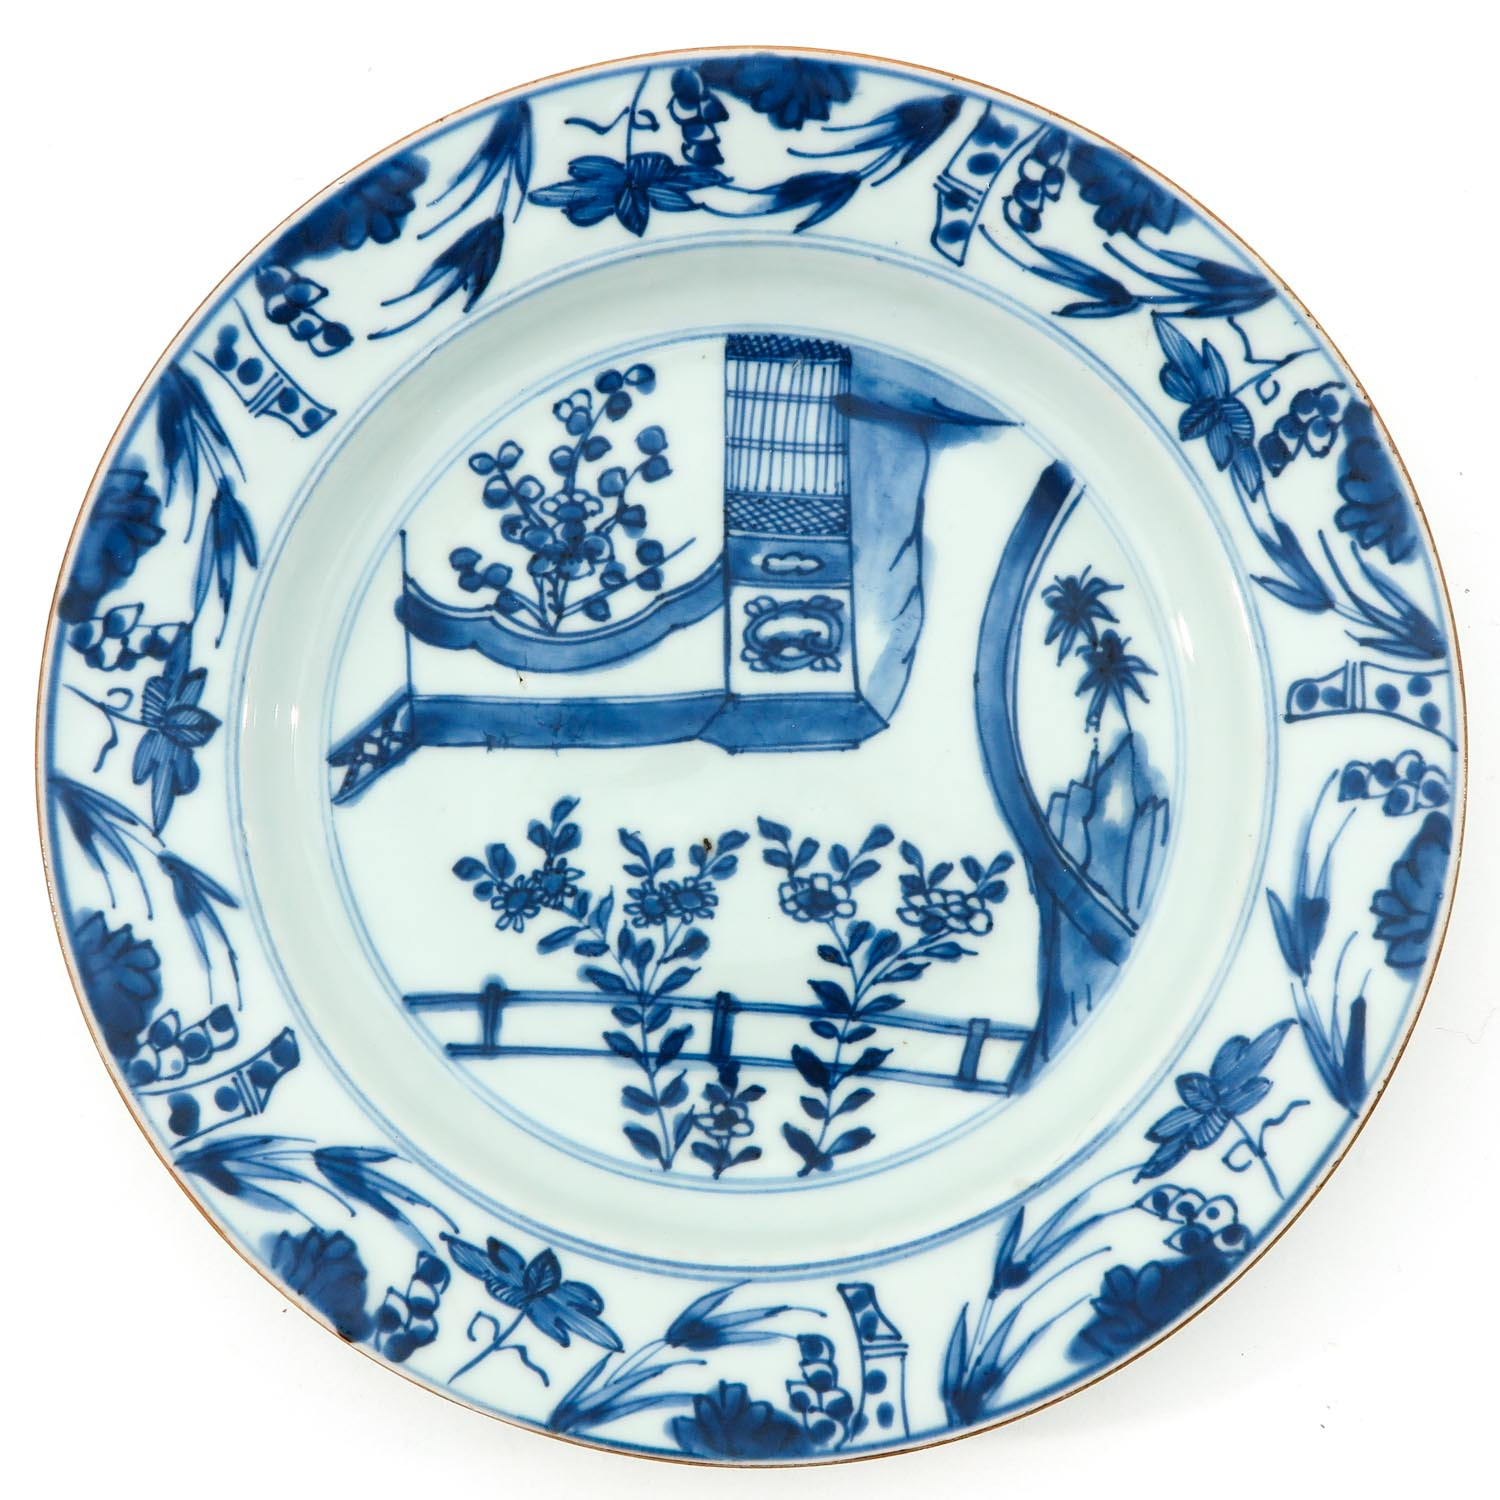 A Pair of Blue and White Plates - Image 5 of 9